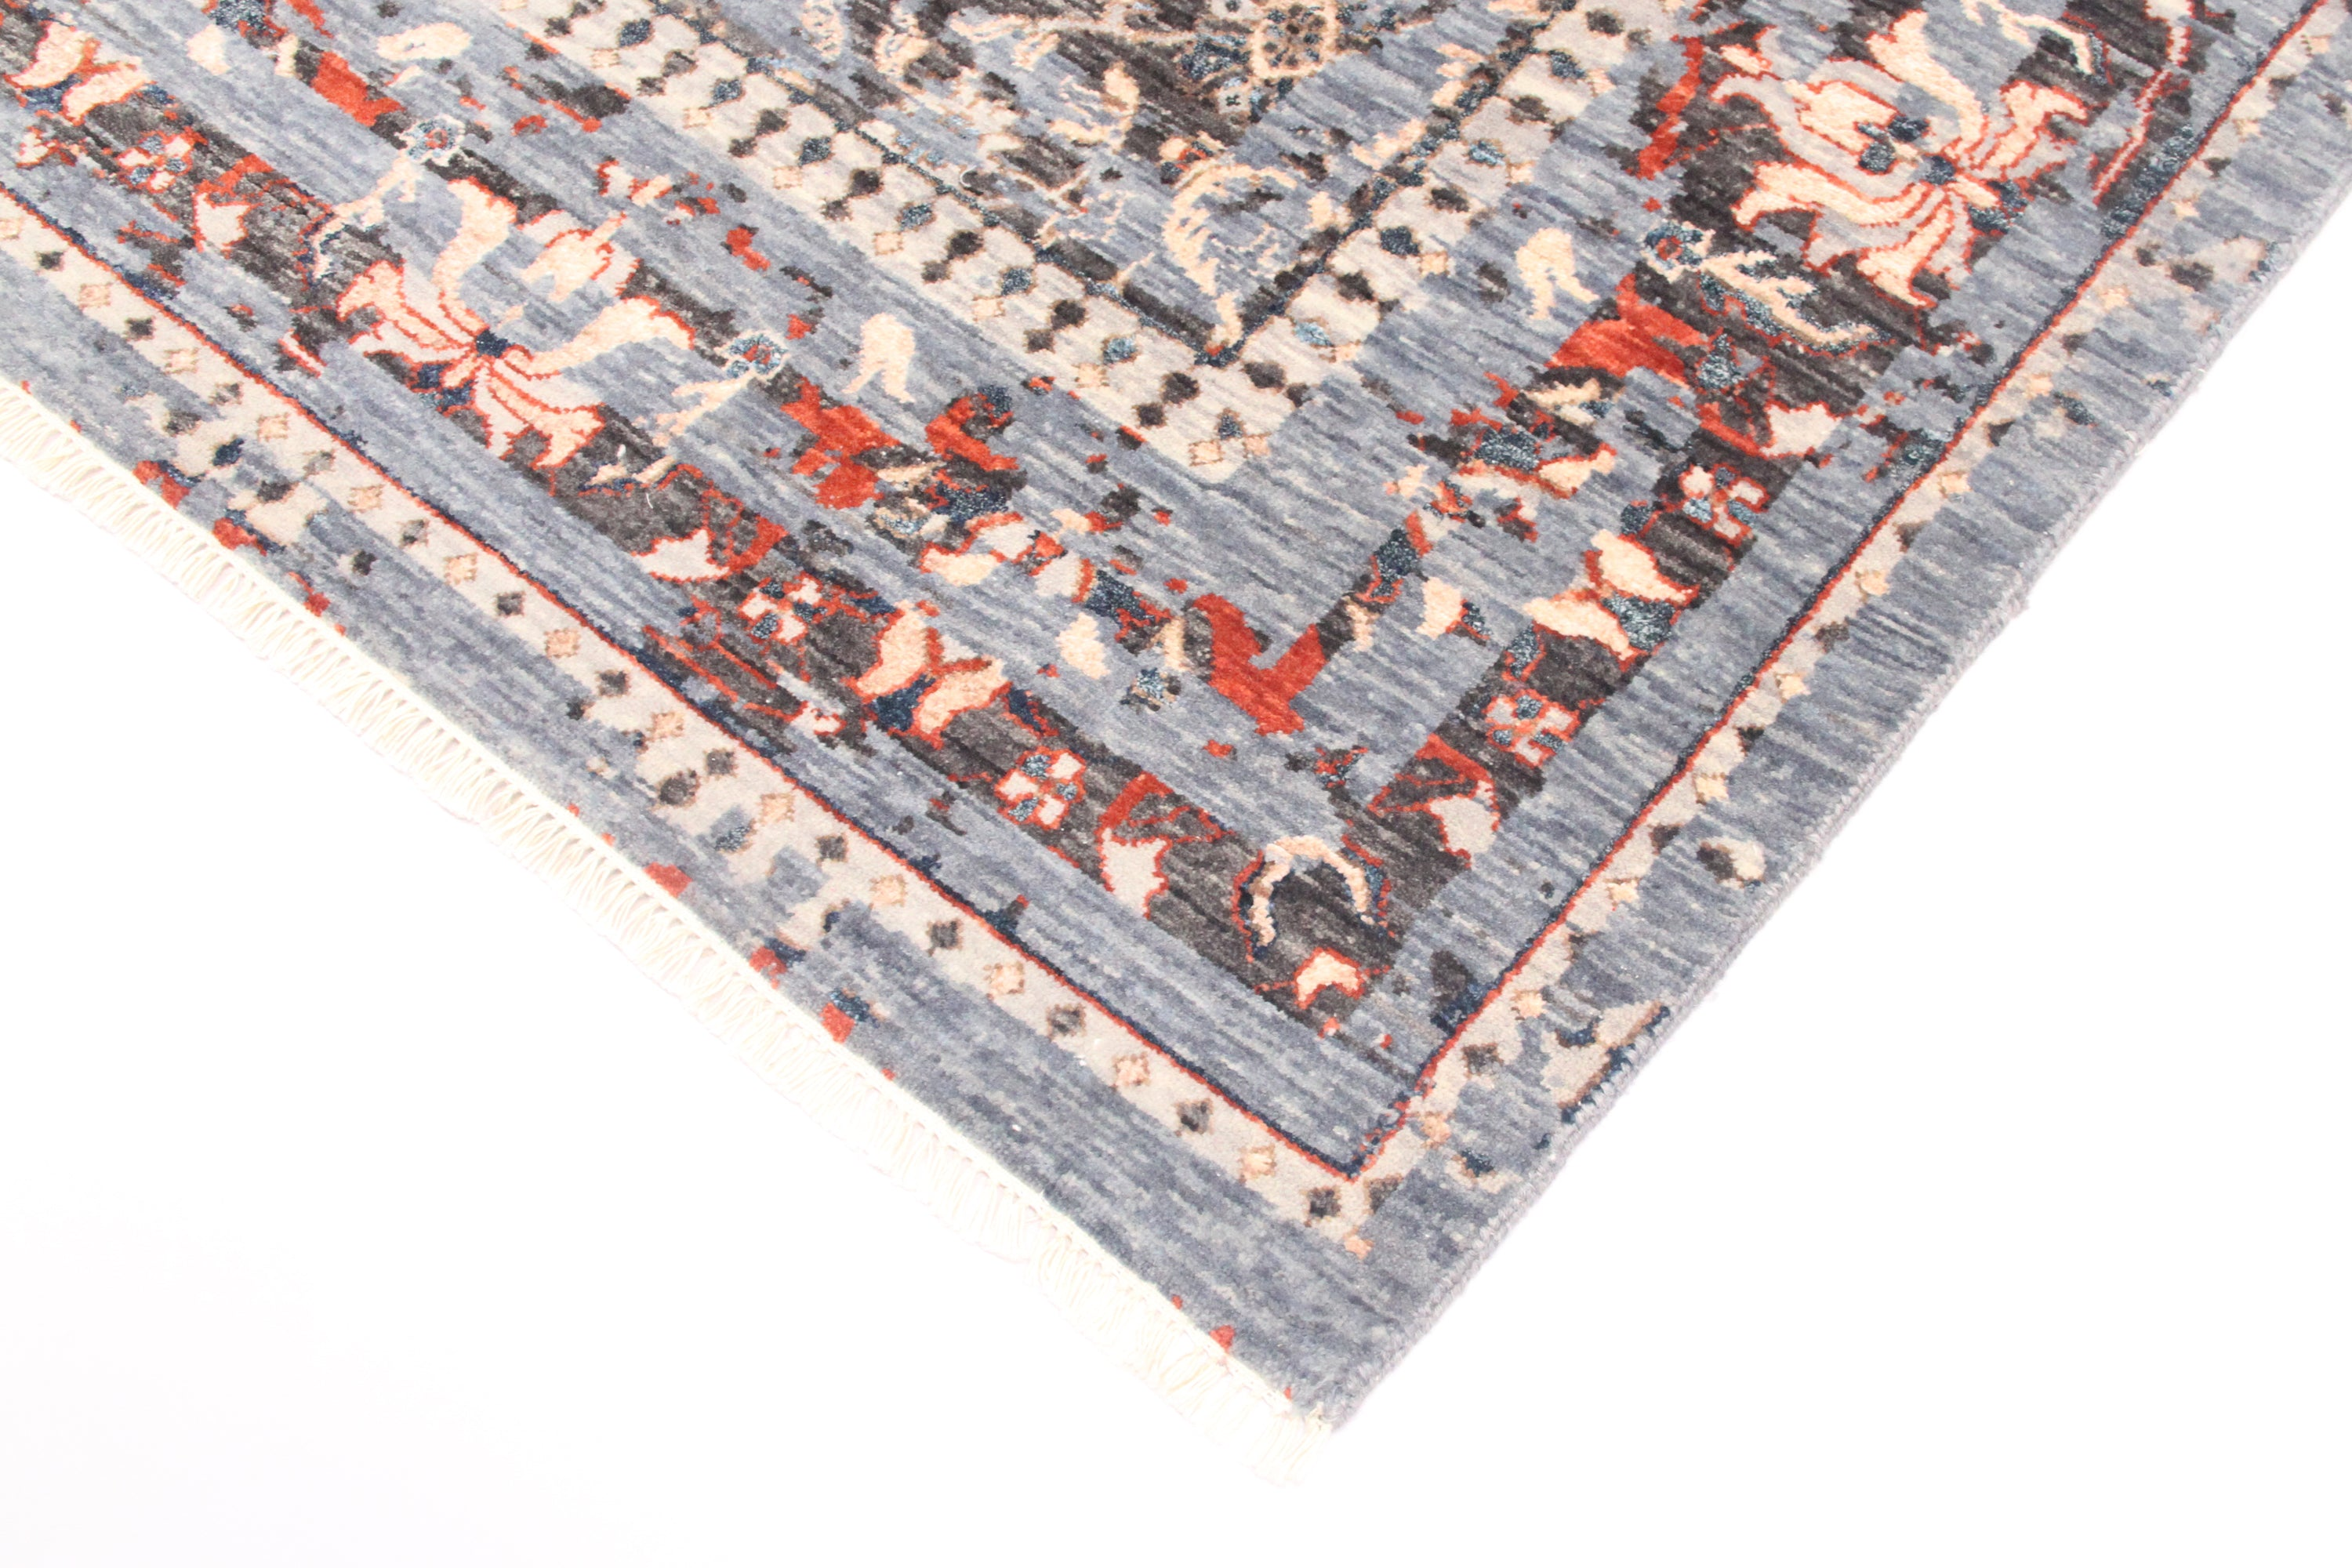 Handmade rugs, carpet culture rug, nyc rugs, cheap rugs, area rug, new rugs, modern rugs, grass rugs, transitional rugs